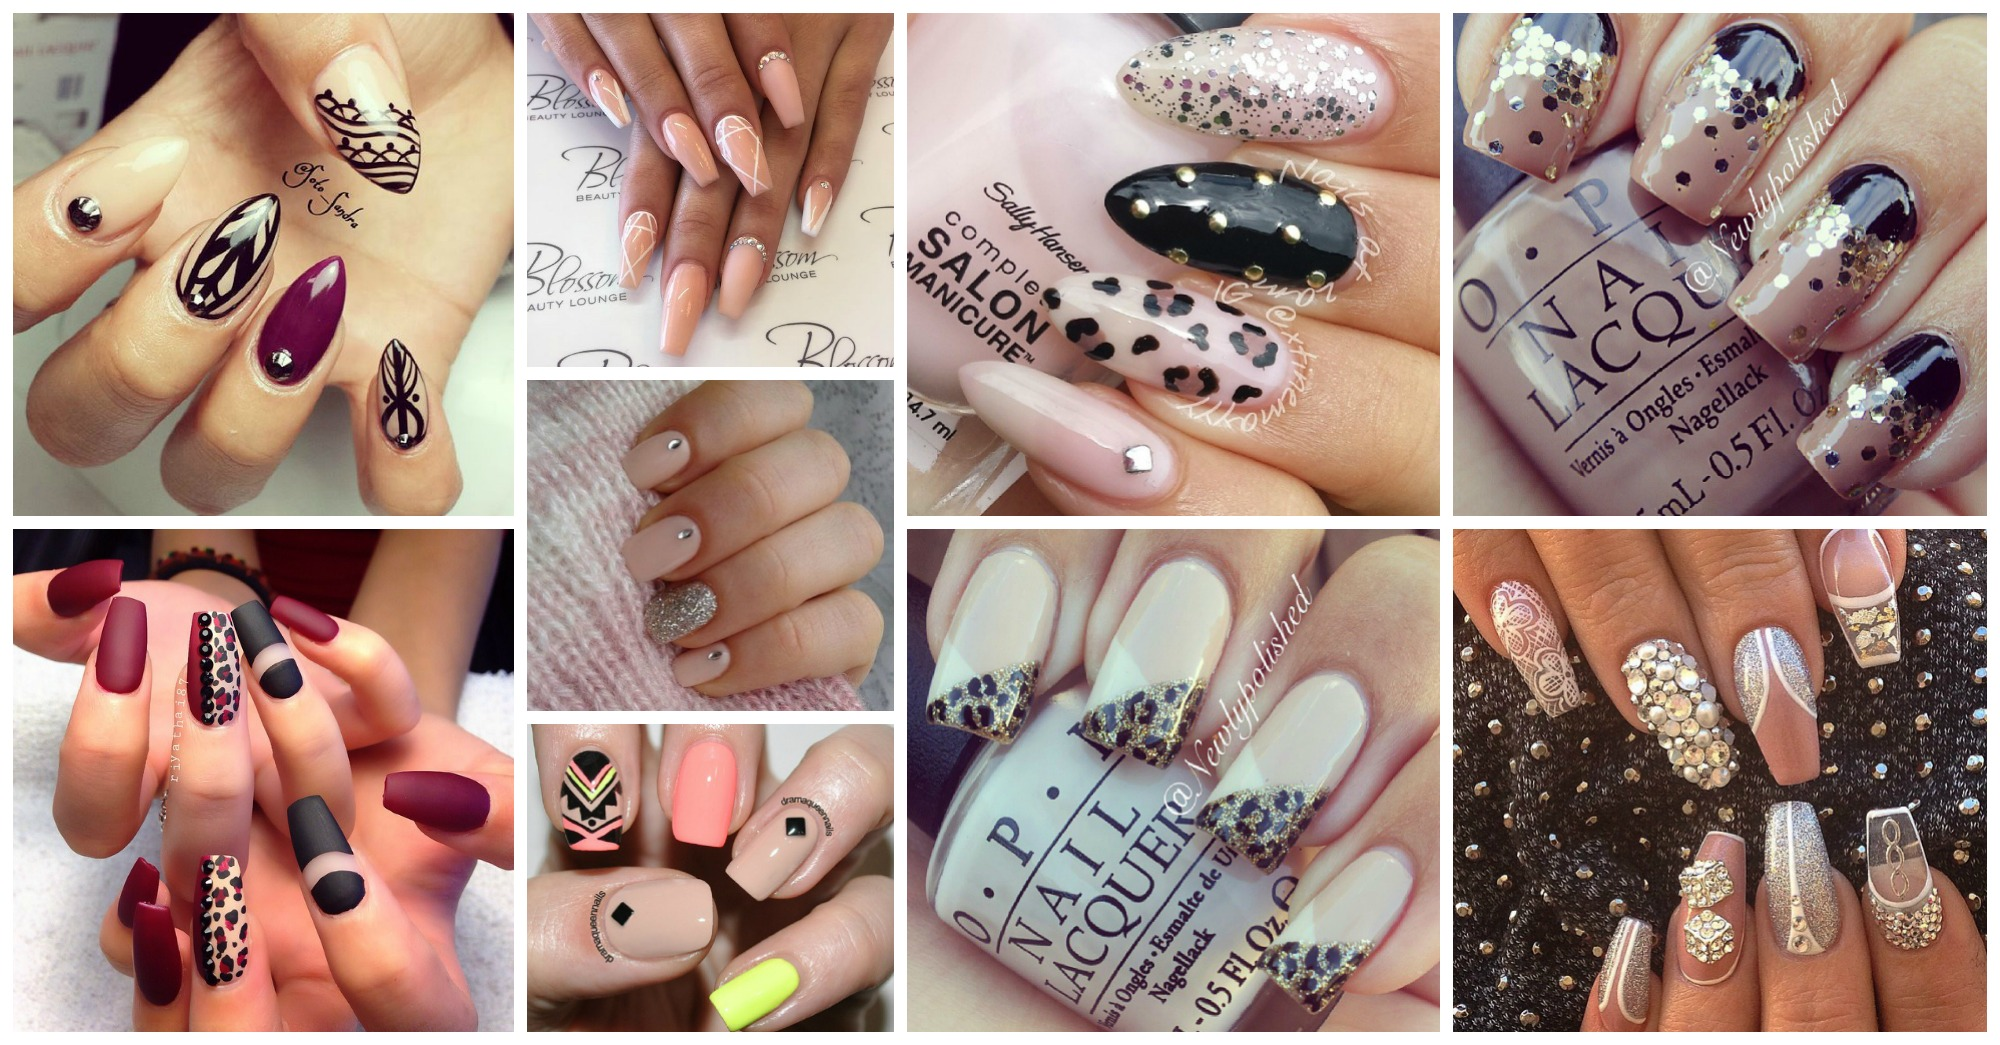 20 Lovely Beige Nail Designs To Copy This Spring